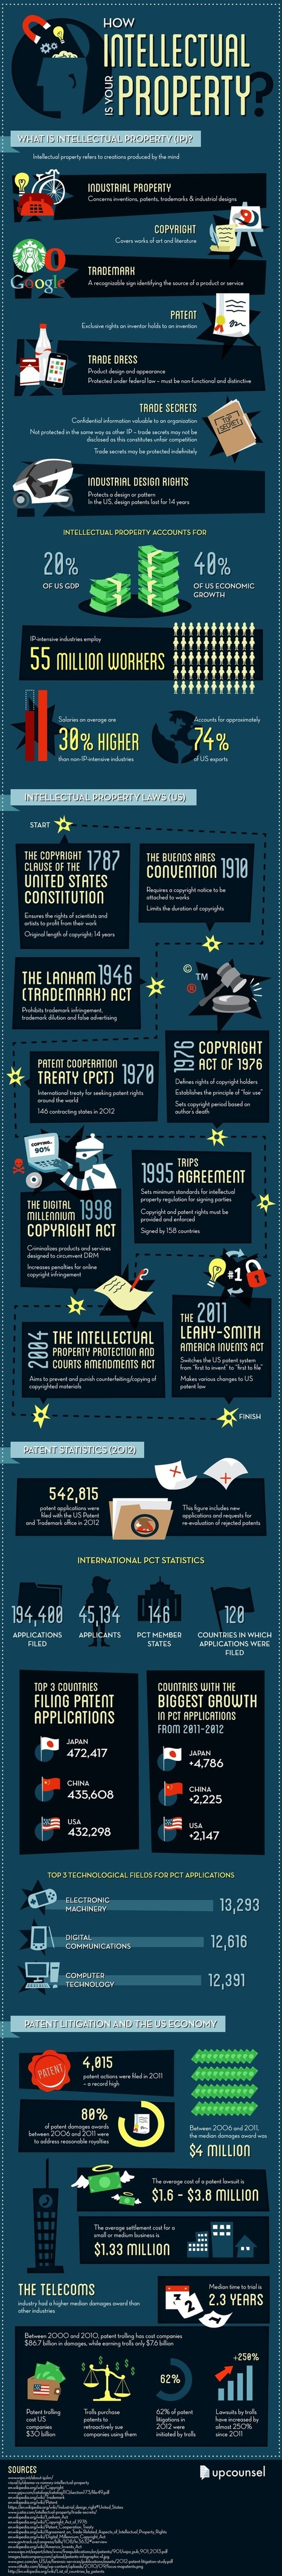 How Intellectual Is Your Property? #infographic | Knowledge for Entrepreneurs | Scoop.it